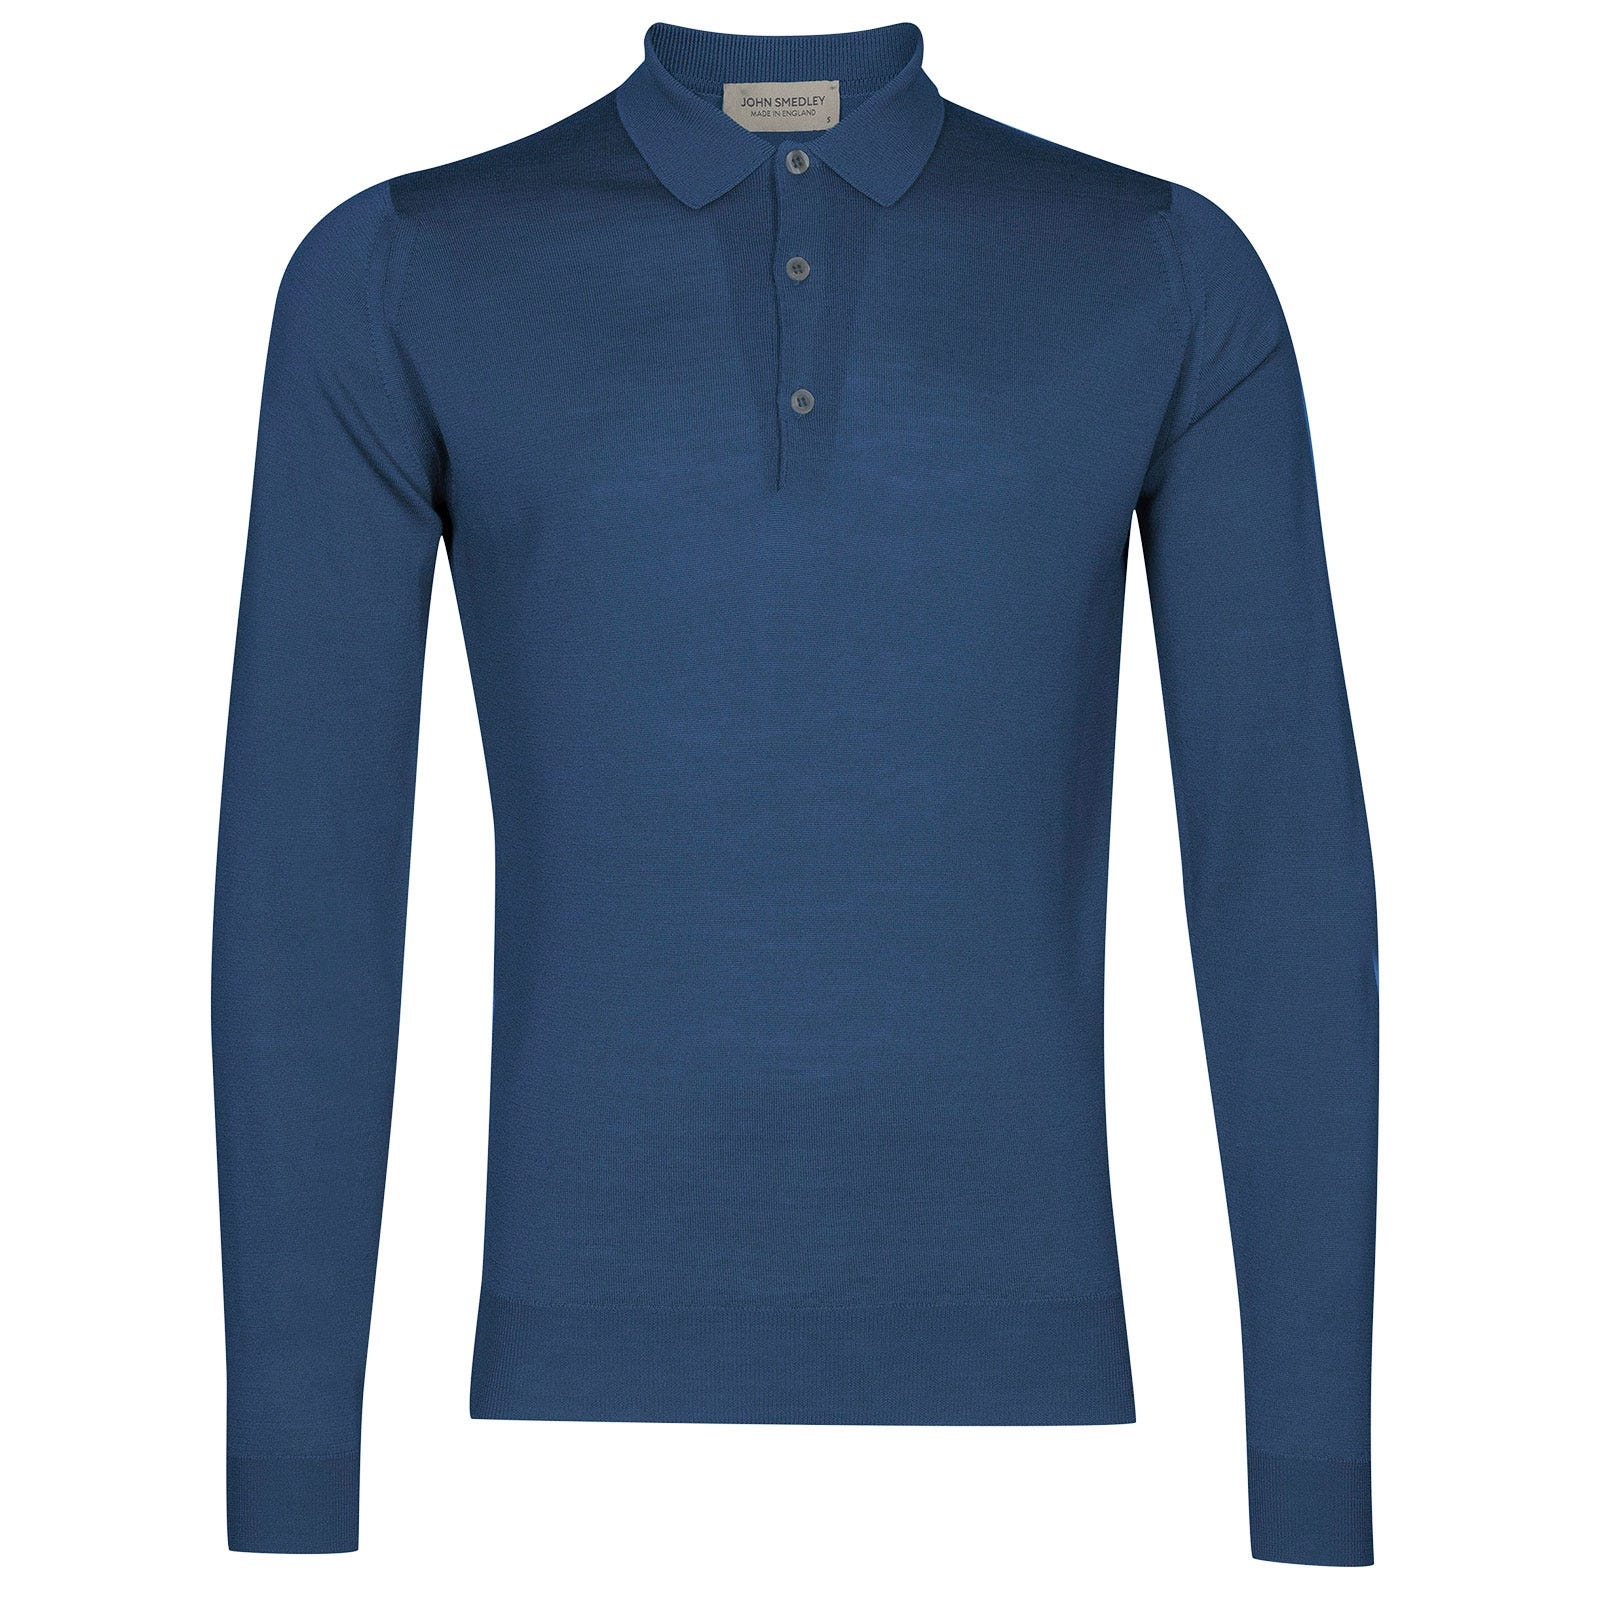 John Smedley belper Merino Wool Shirt in Derwent Blue-XL